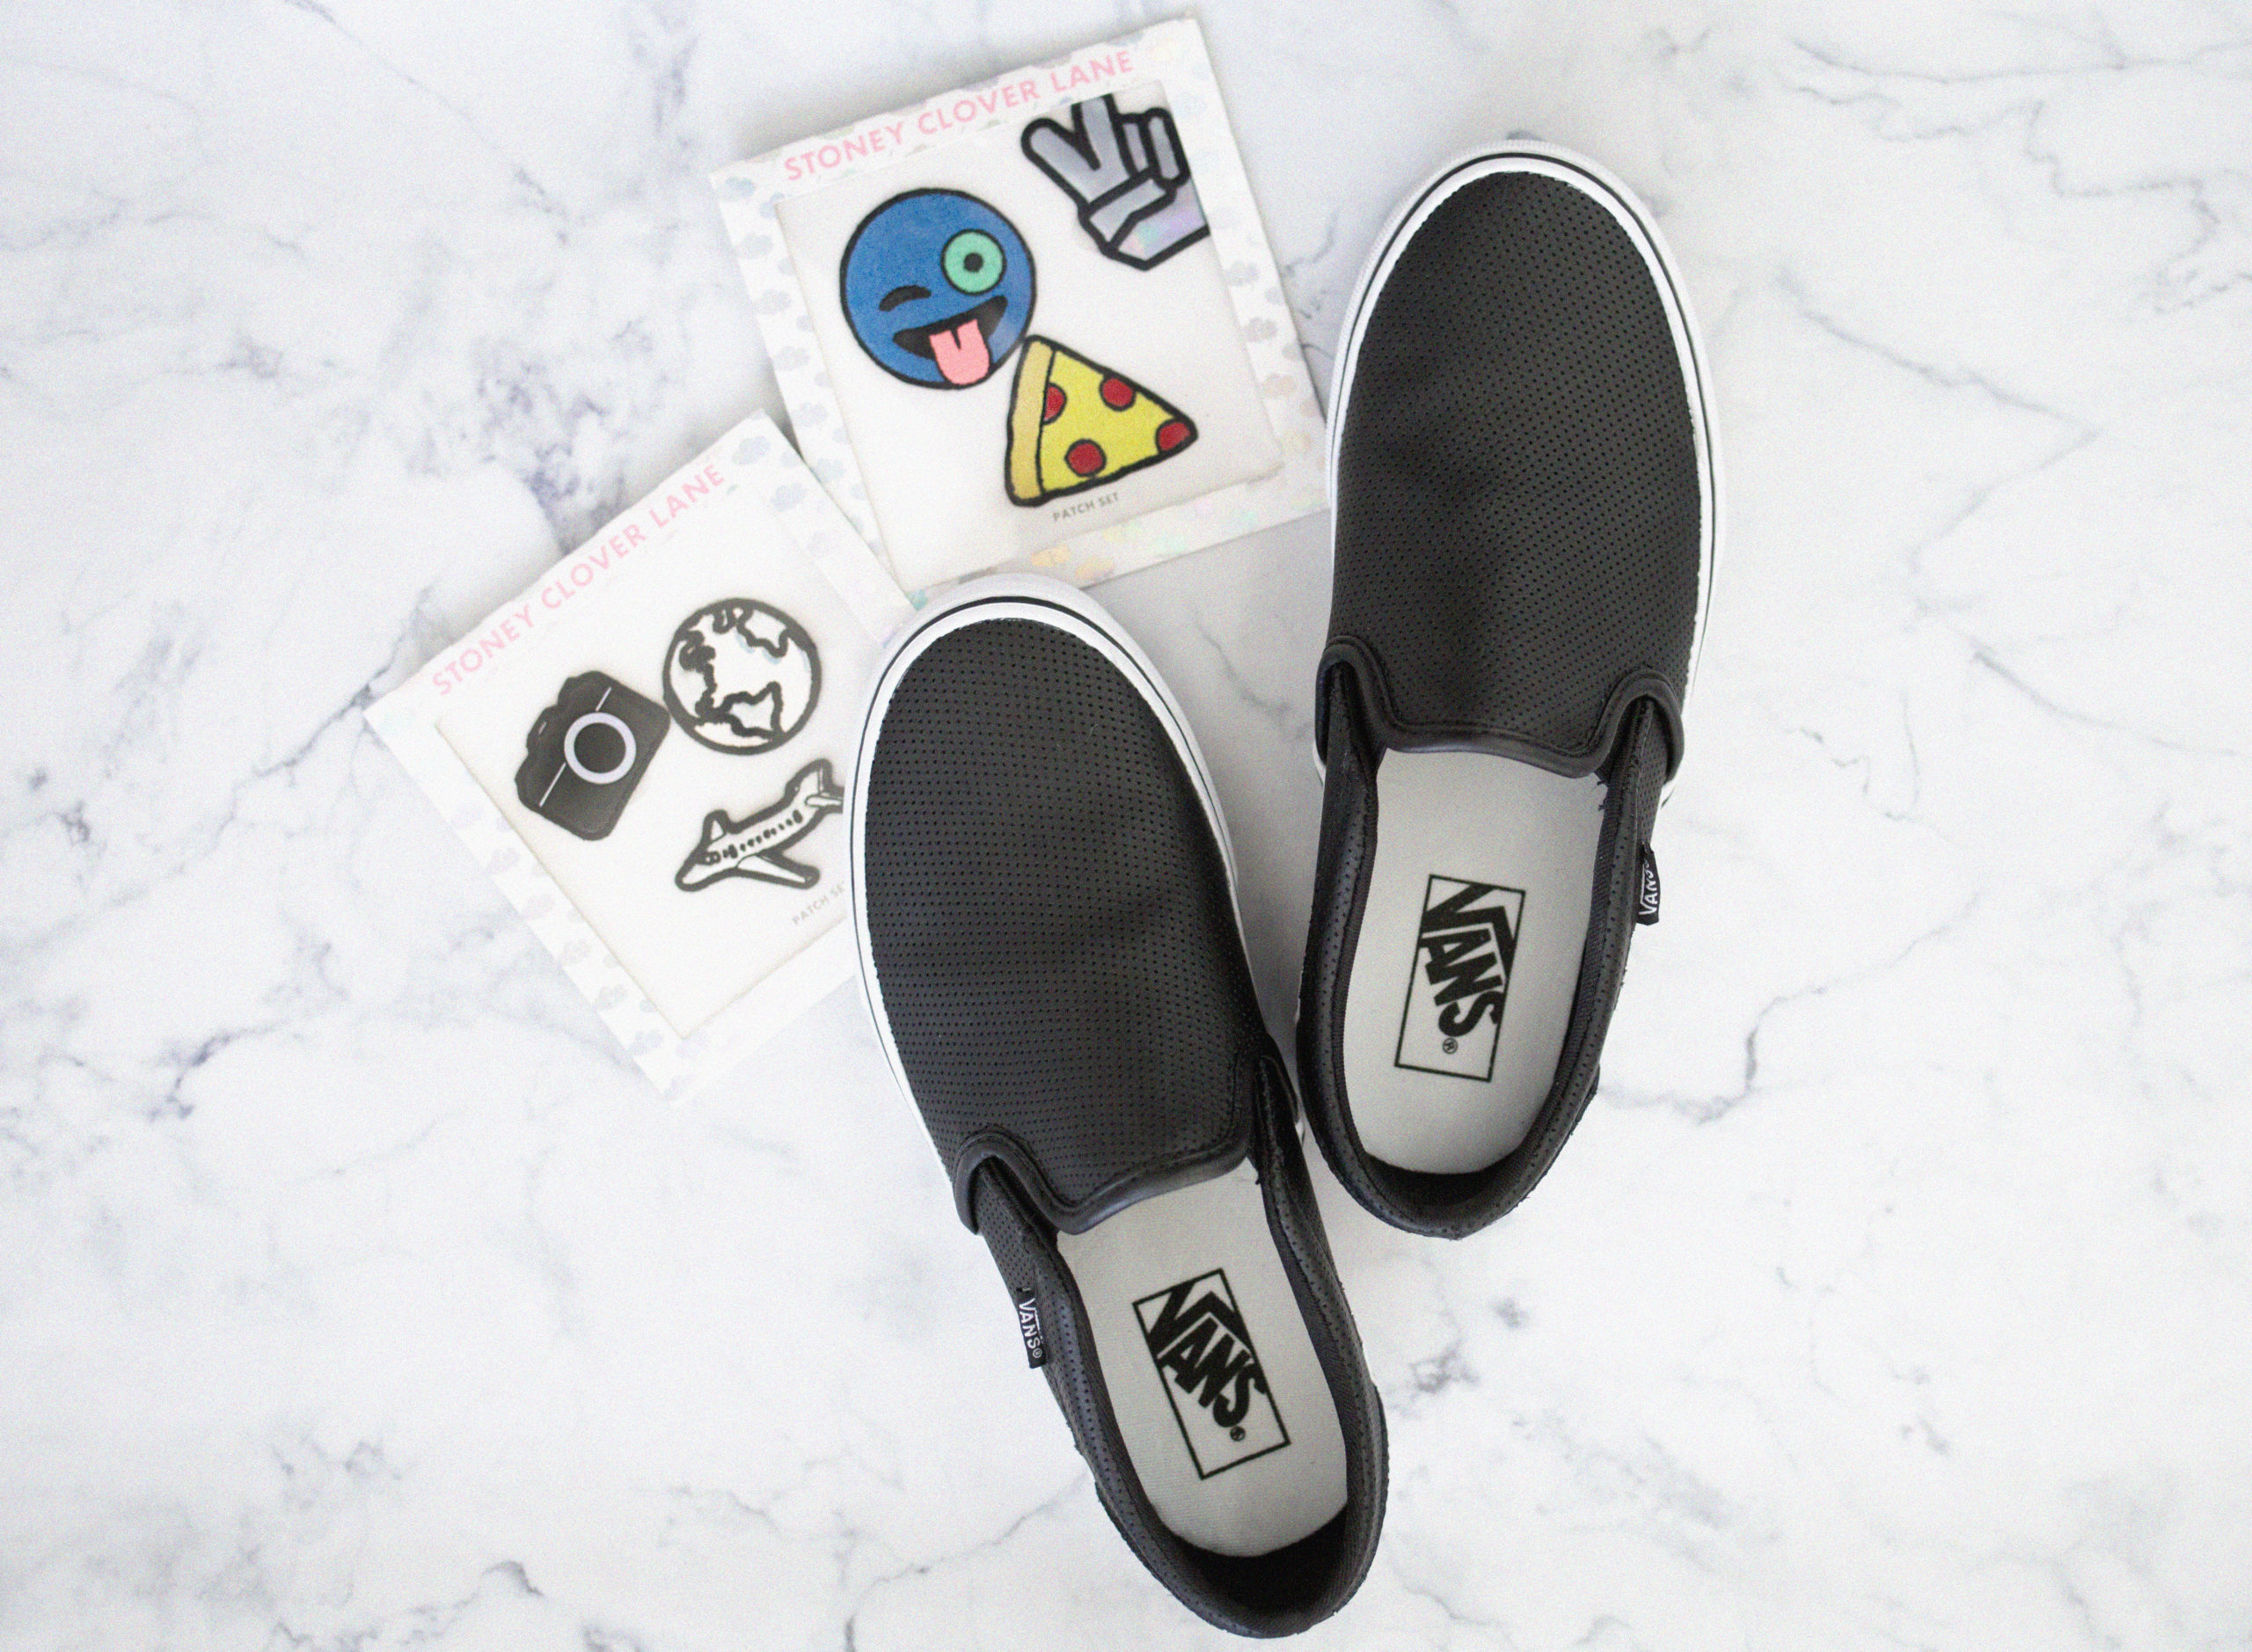 How To Put Patches On Your Vans Erin Aschow of Revenge Bakery Lifestyle  Blog creates DIY embellished tennis shoes 75119dae4